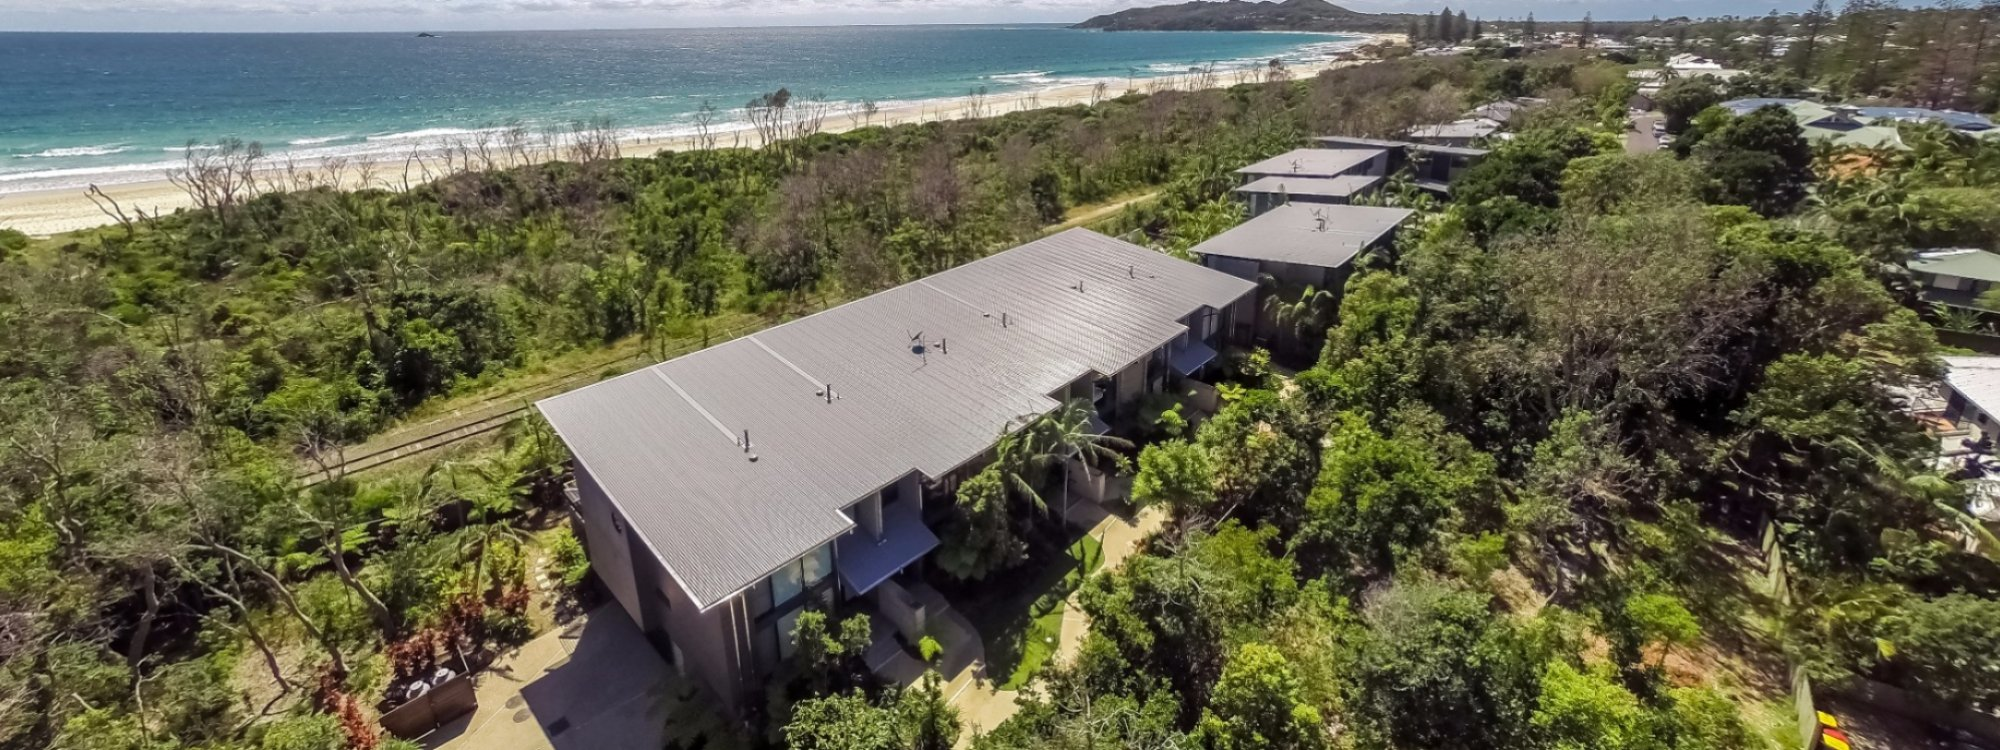 Kiah Beachside - Belongil Beach - Byron Bay - Aerial View